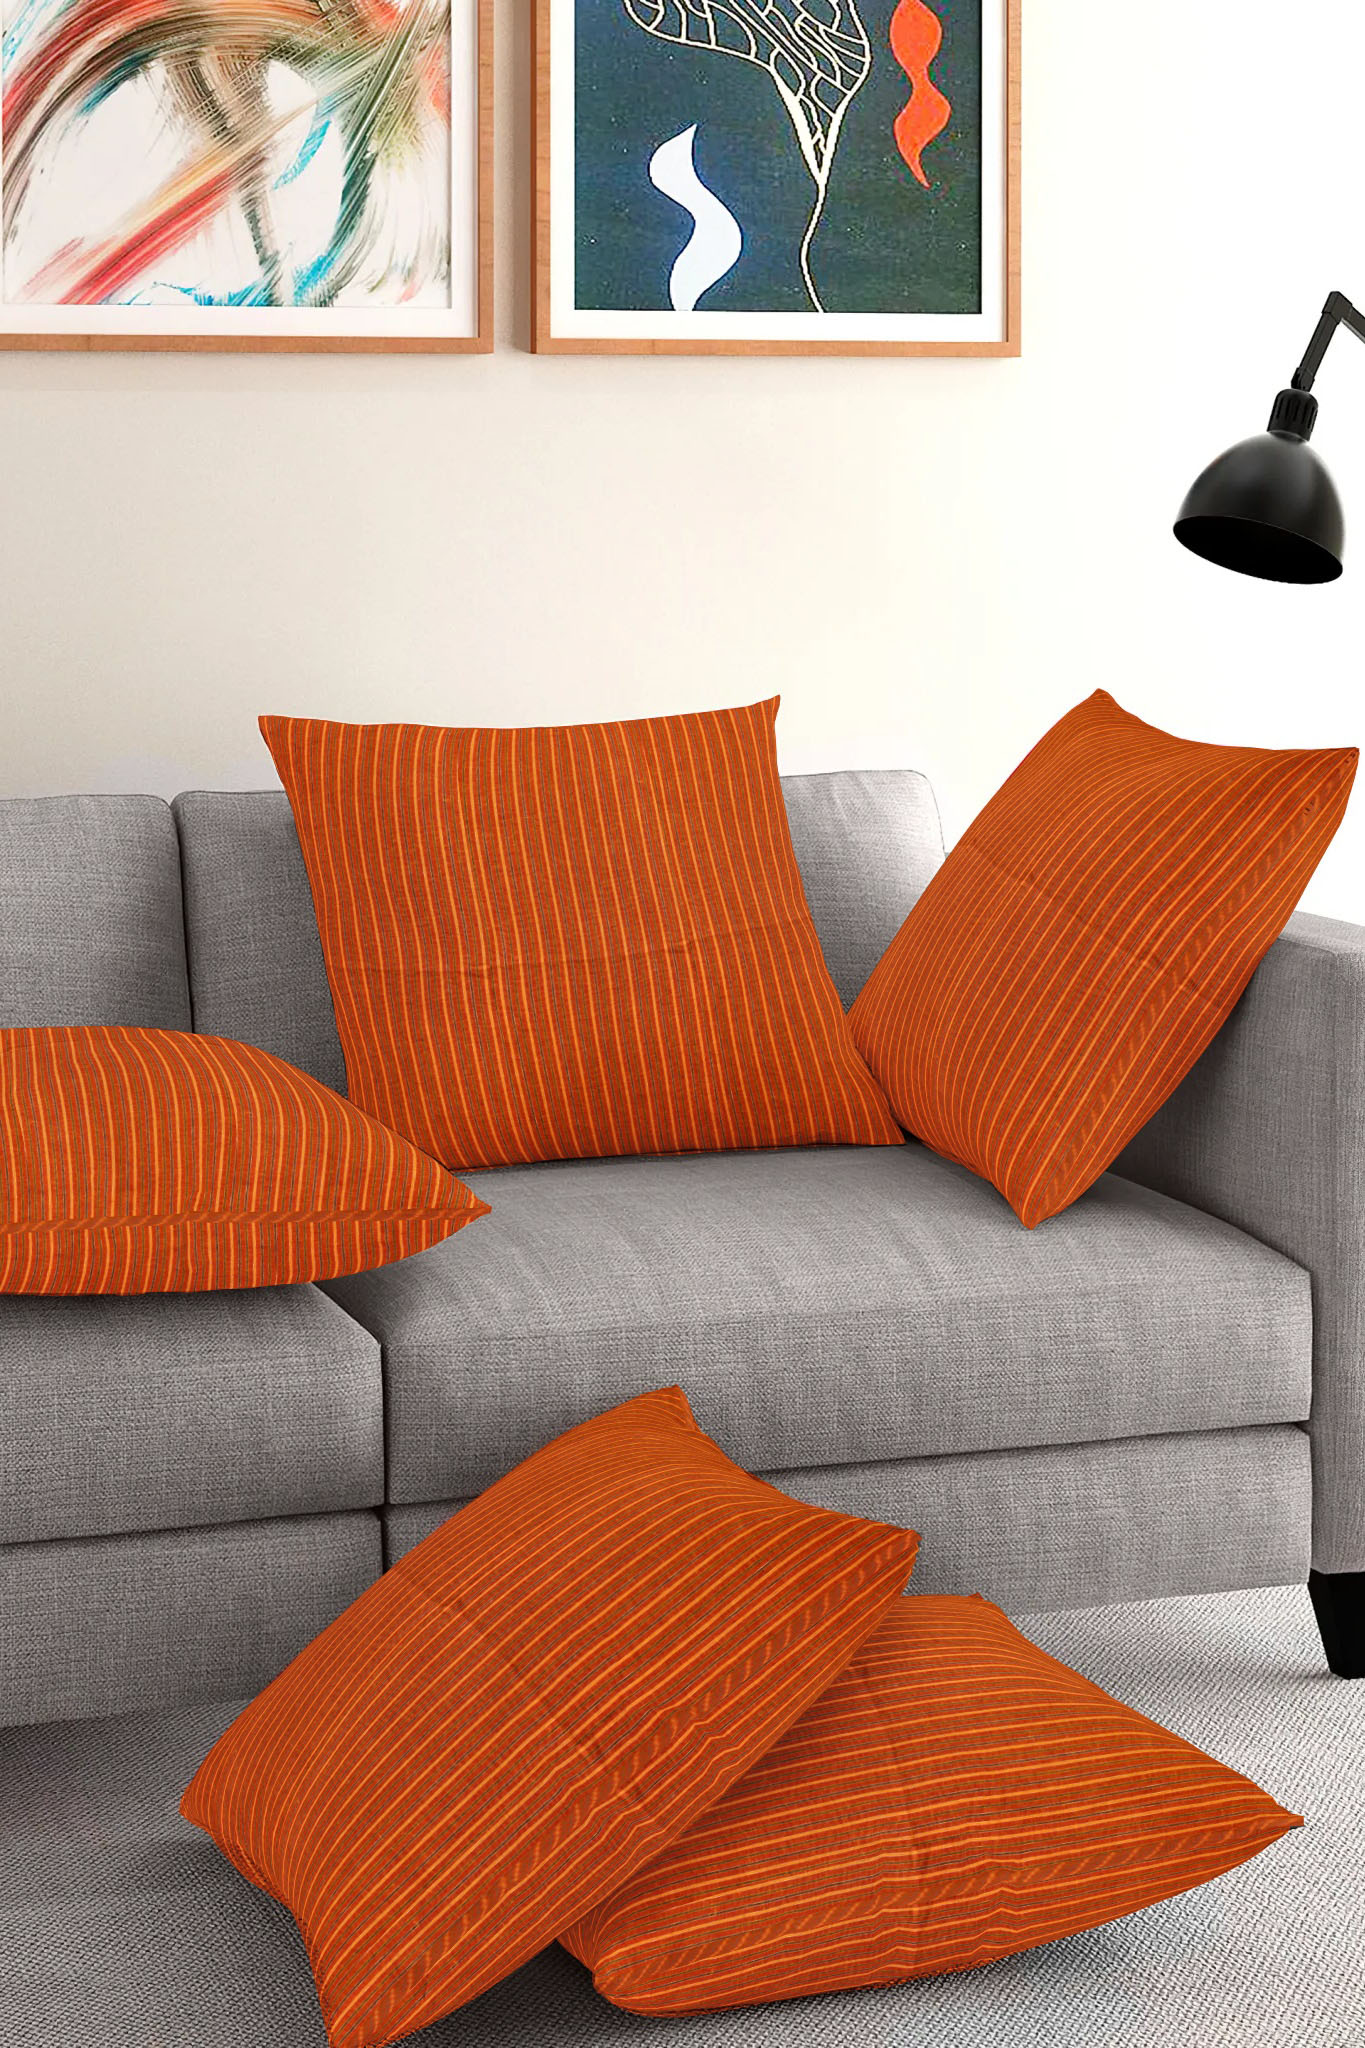 Set of 5-Orange Yellow Cotton Cushion Cover-35378-16x16 Inches